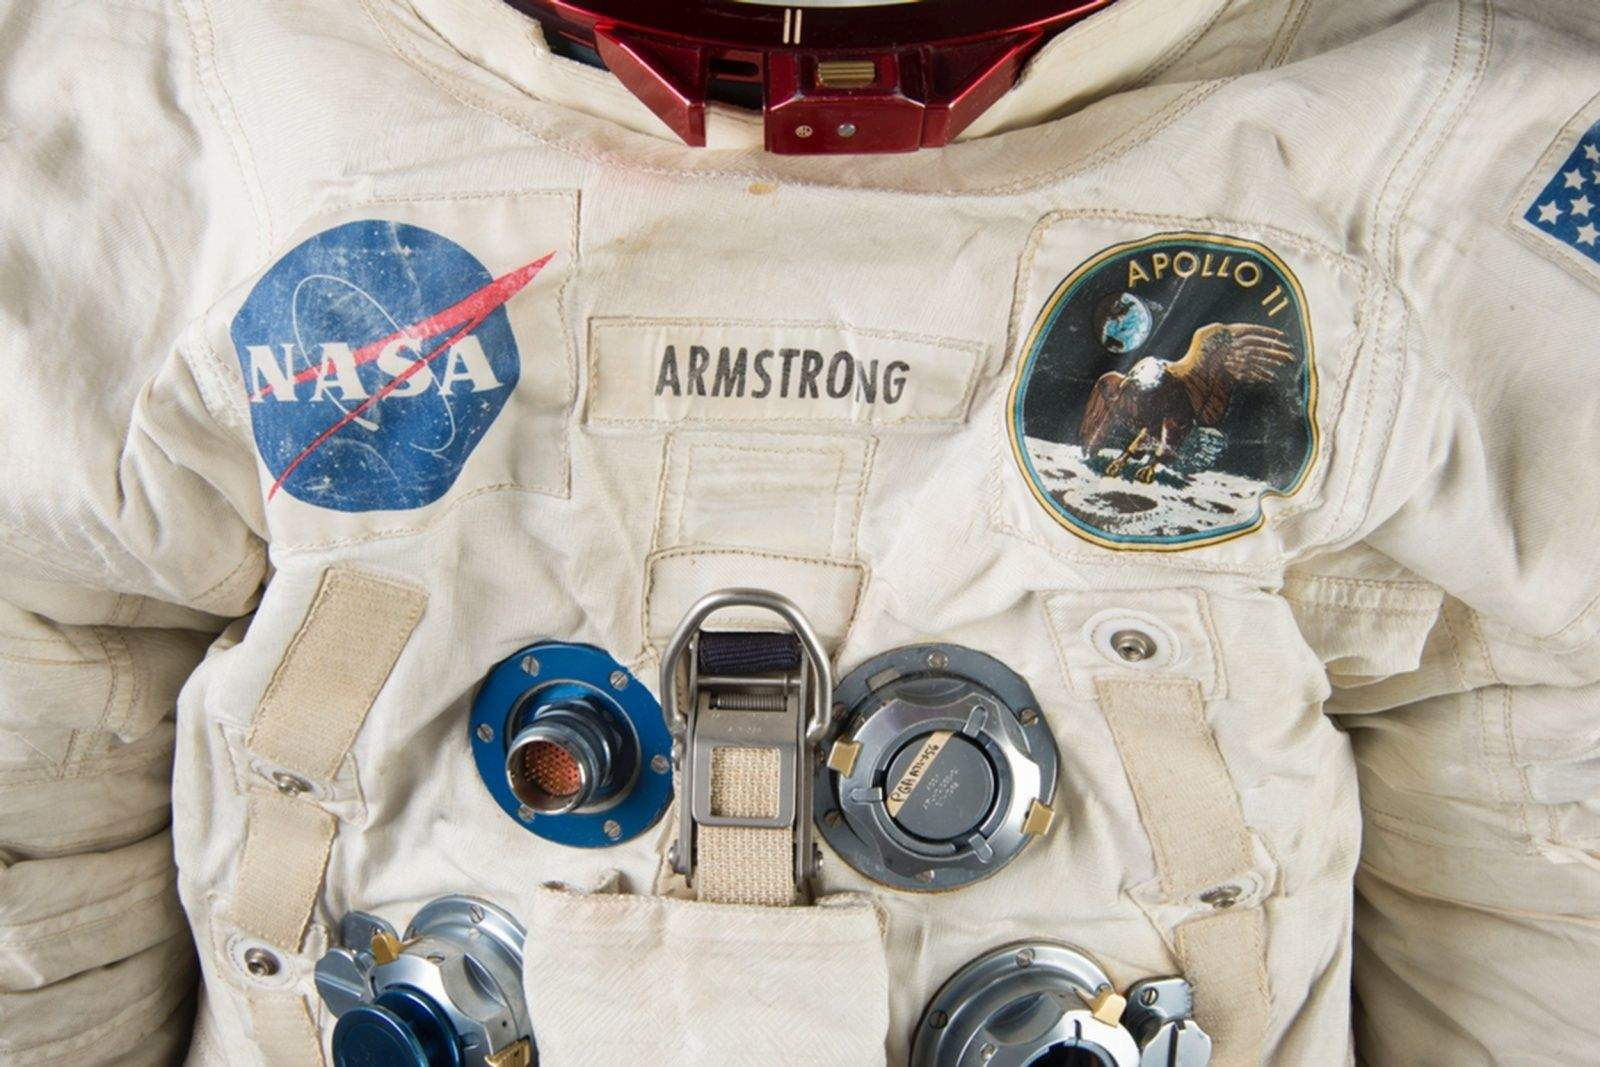 Neil Armstrong's suit needs a little preservation work before it can be displayed in 2019 for the 50th anniversary of the Apollo 11 moon landing.